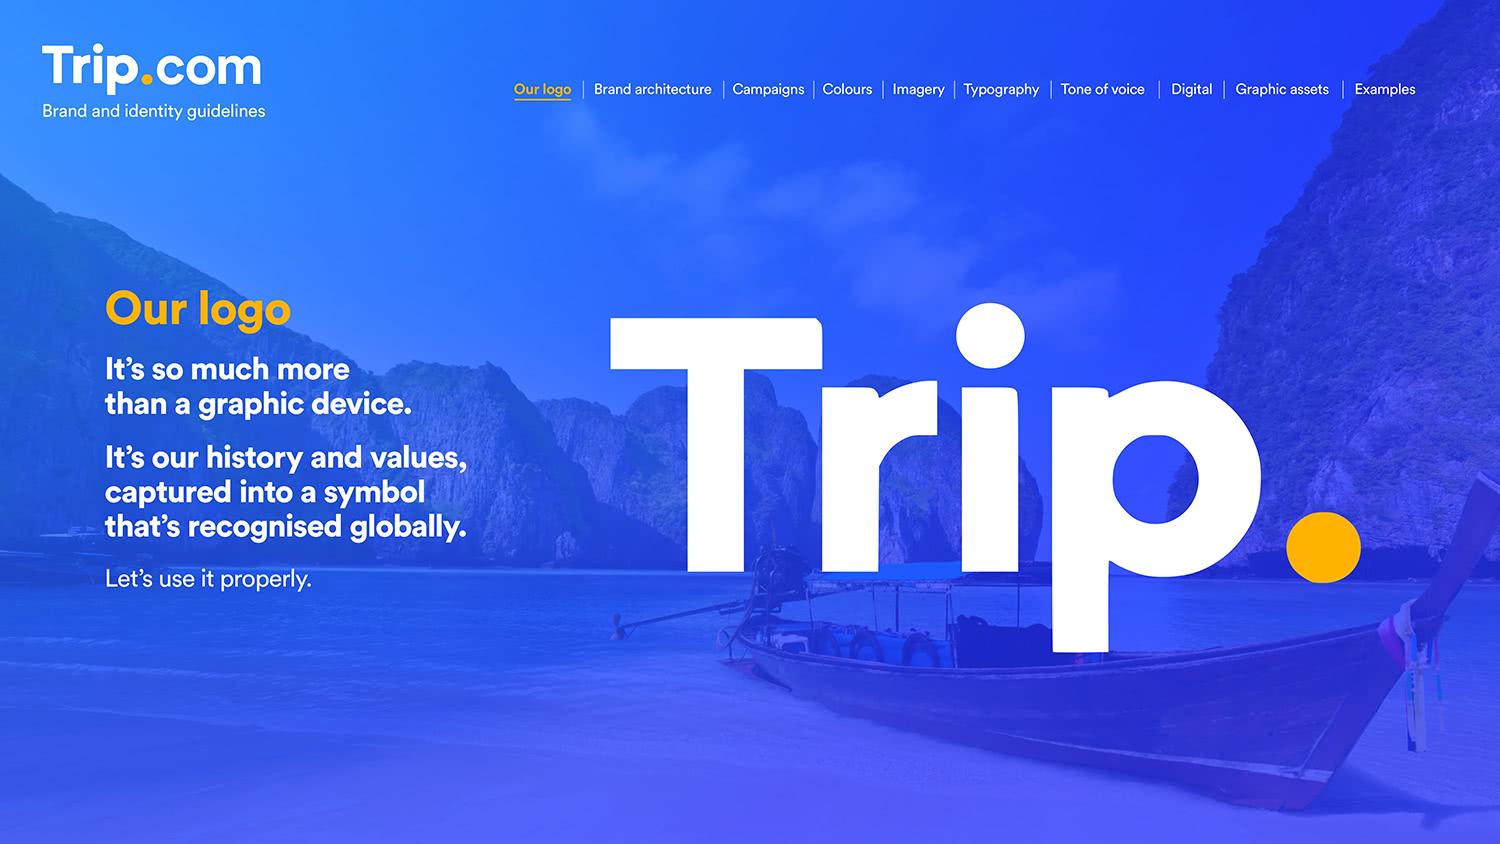 Proposed Updated version of Trip.com logo